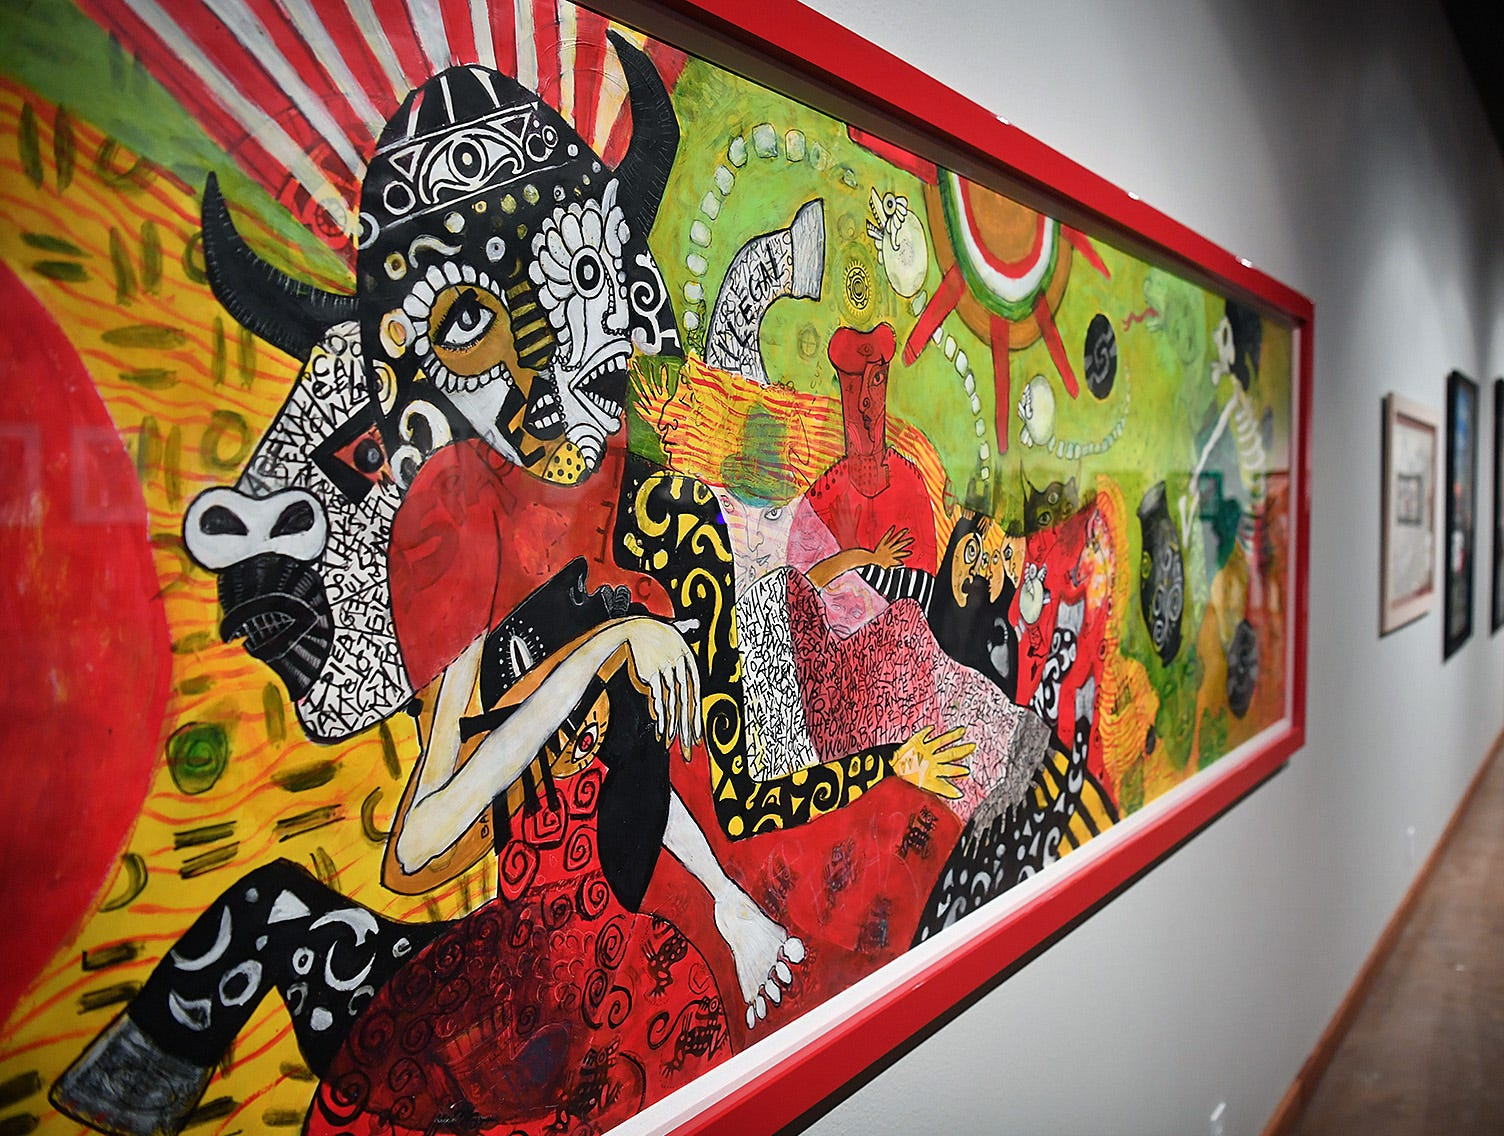 A large piece by CiCi Segura Gonzalez titled, Soy Chicana, 2013, is part of the Cheech Marin collection on display at the Wichita Falls Museum of Art at Midwestern State University.